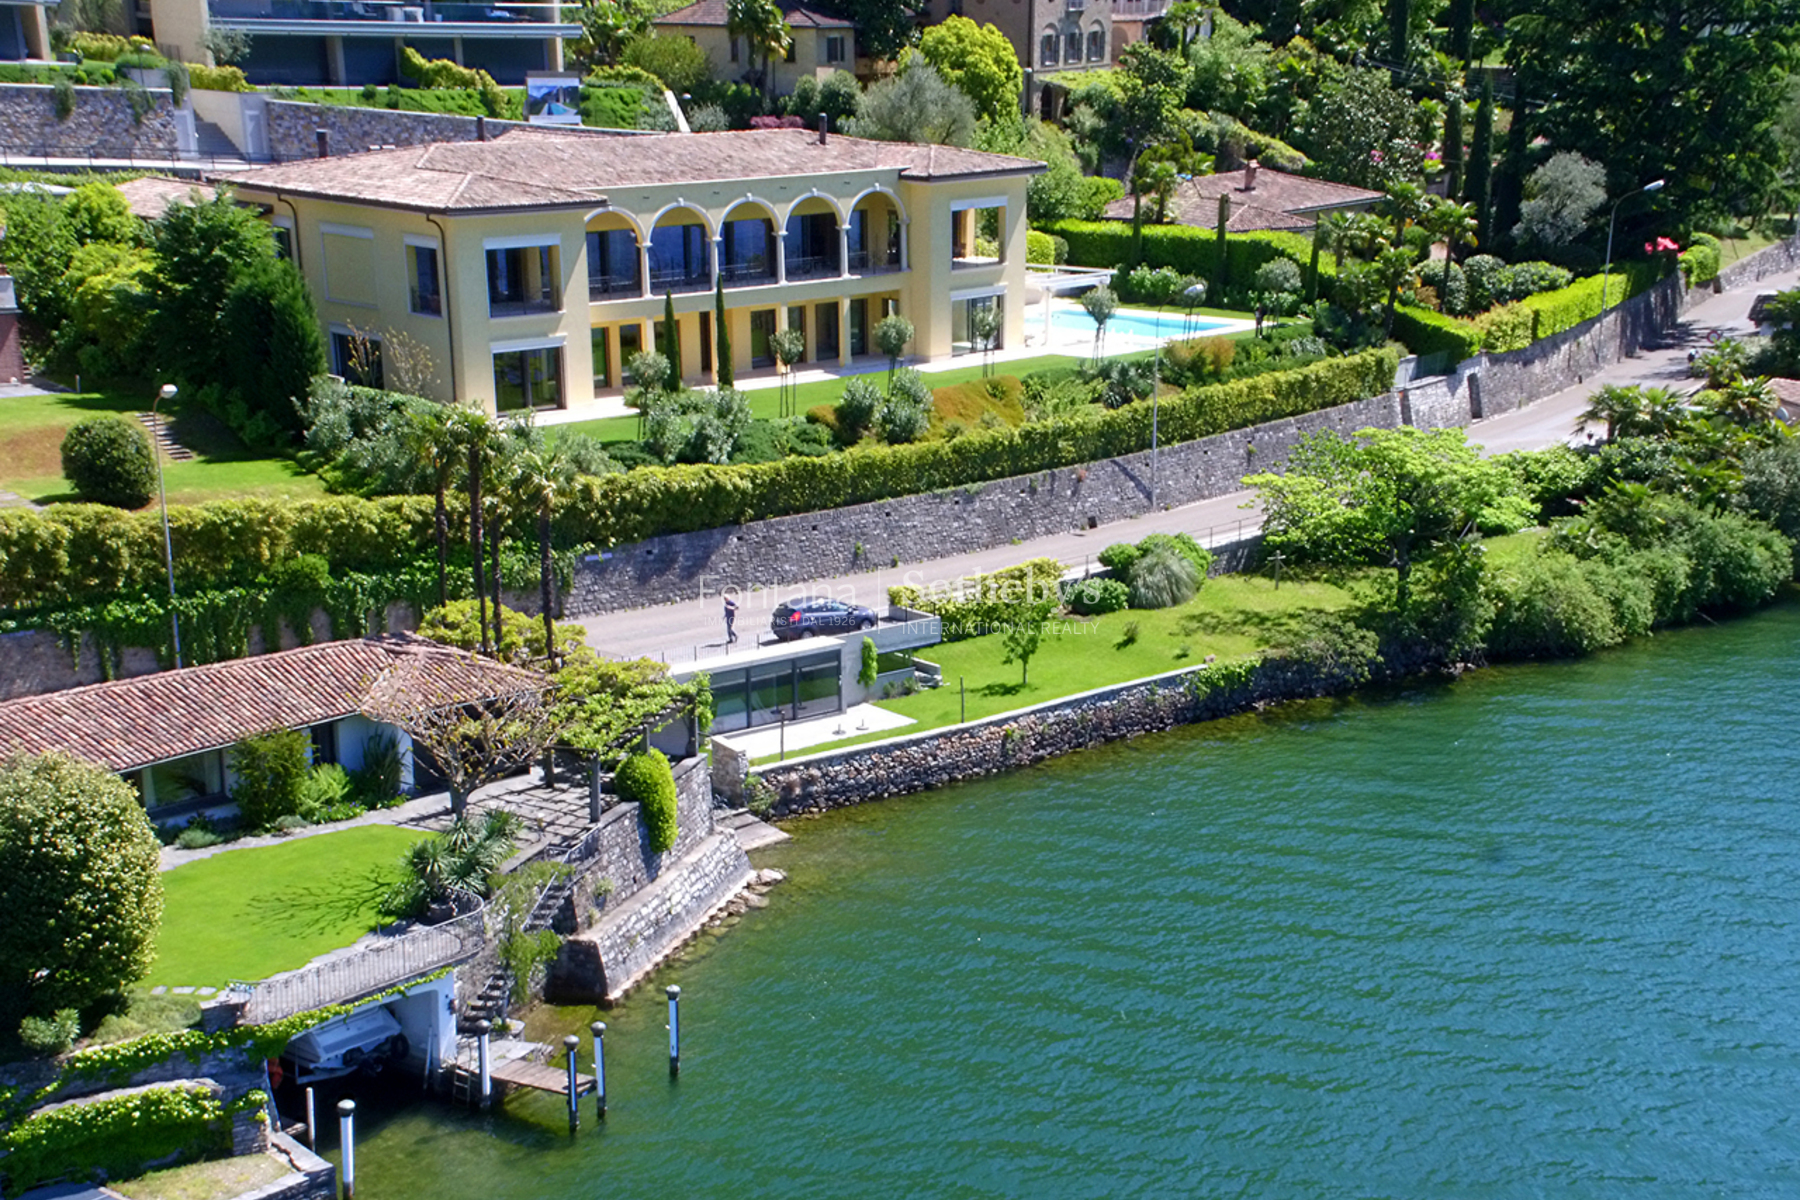 Single Family Home for Sale at Spectacular lakefront property Morcote Morcote, Ticino, 6922 Switzerland